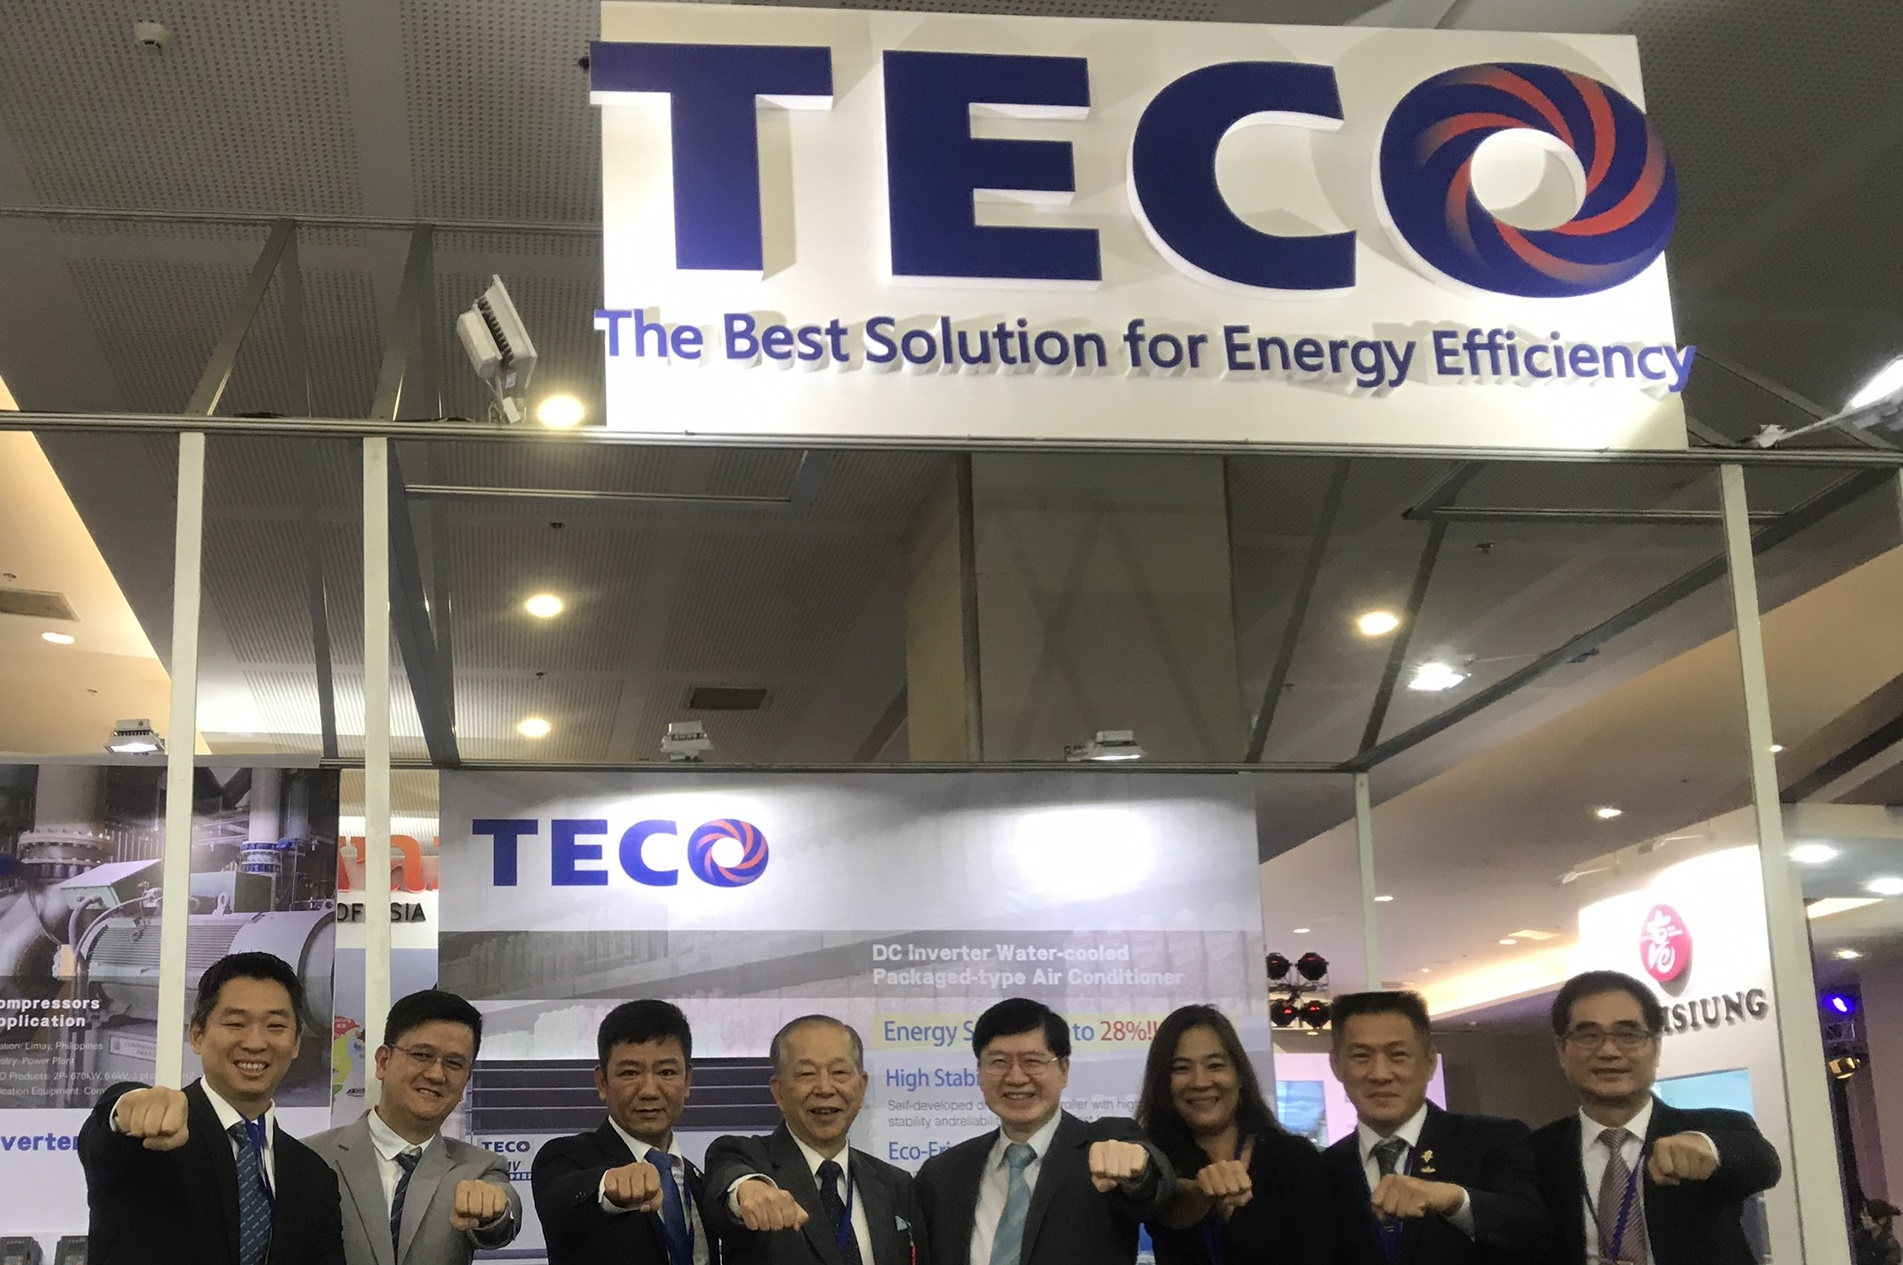 TECO Tapping the Energy Conservation Market of the Philippines